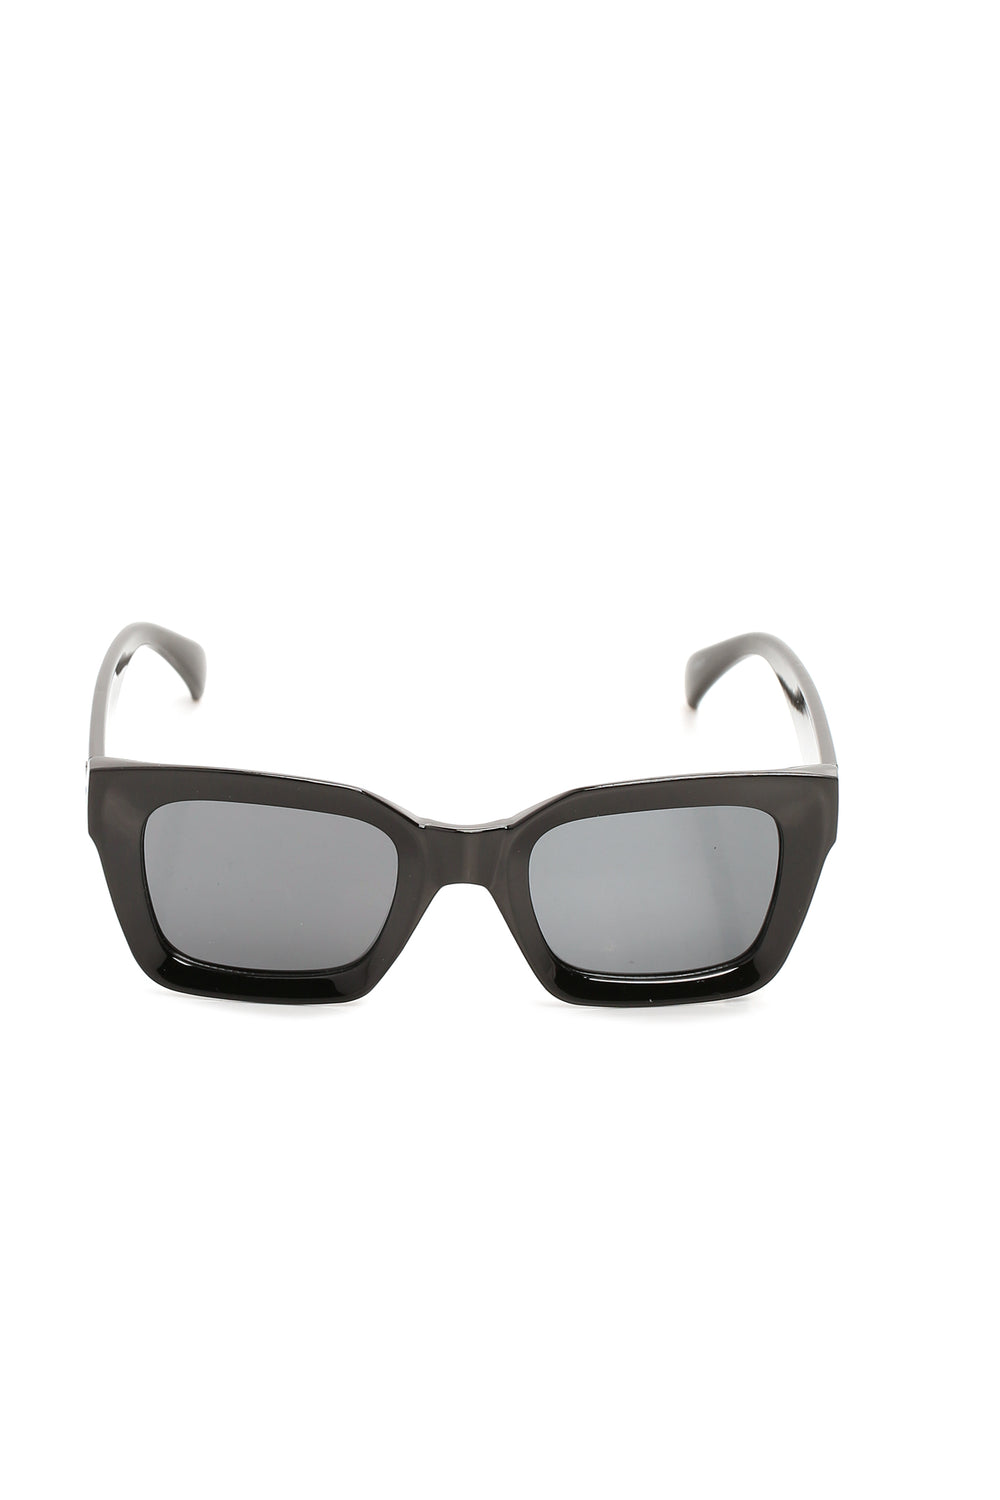 Hang In There Sunglasses - Black